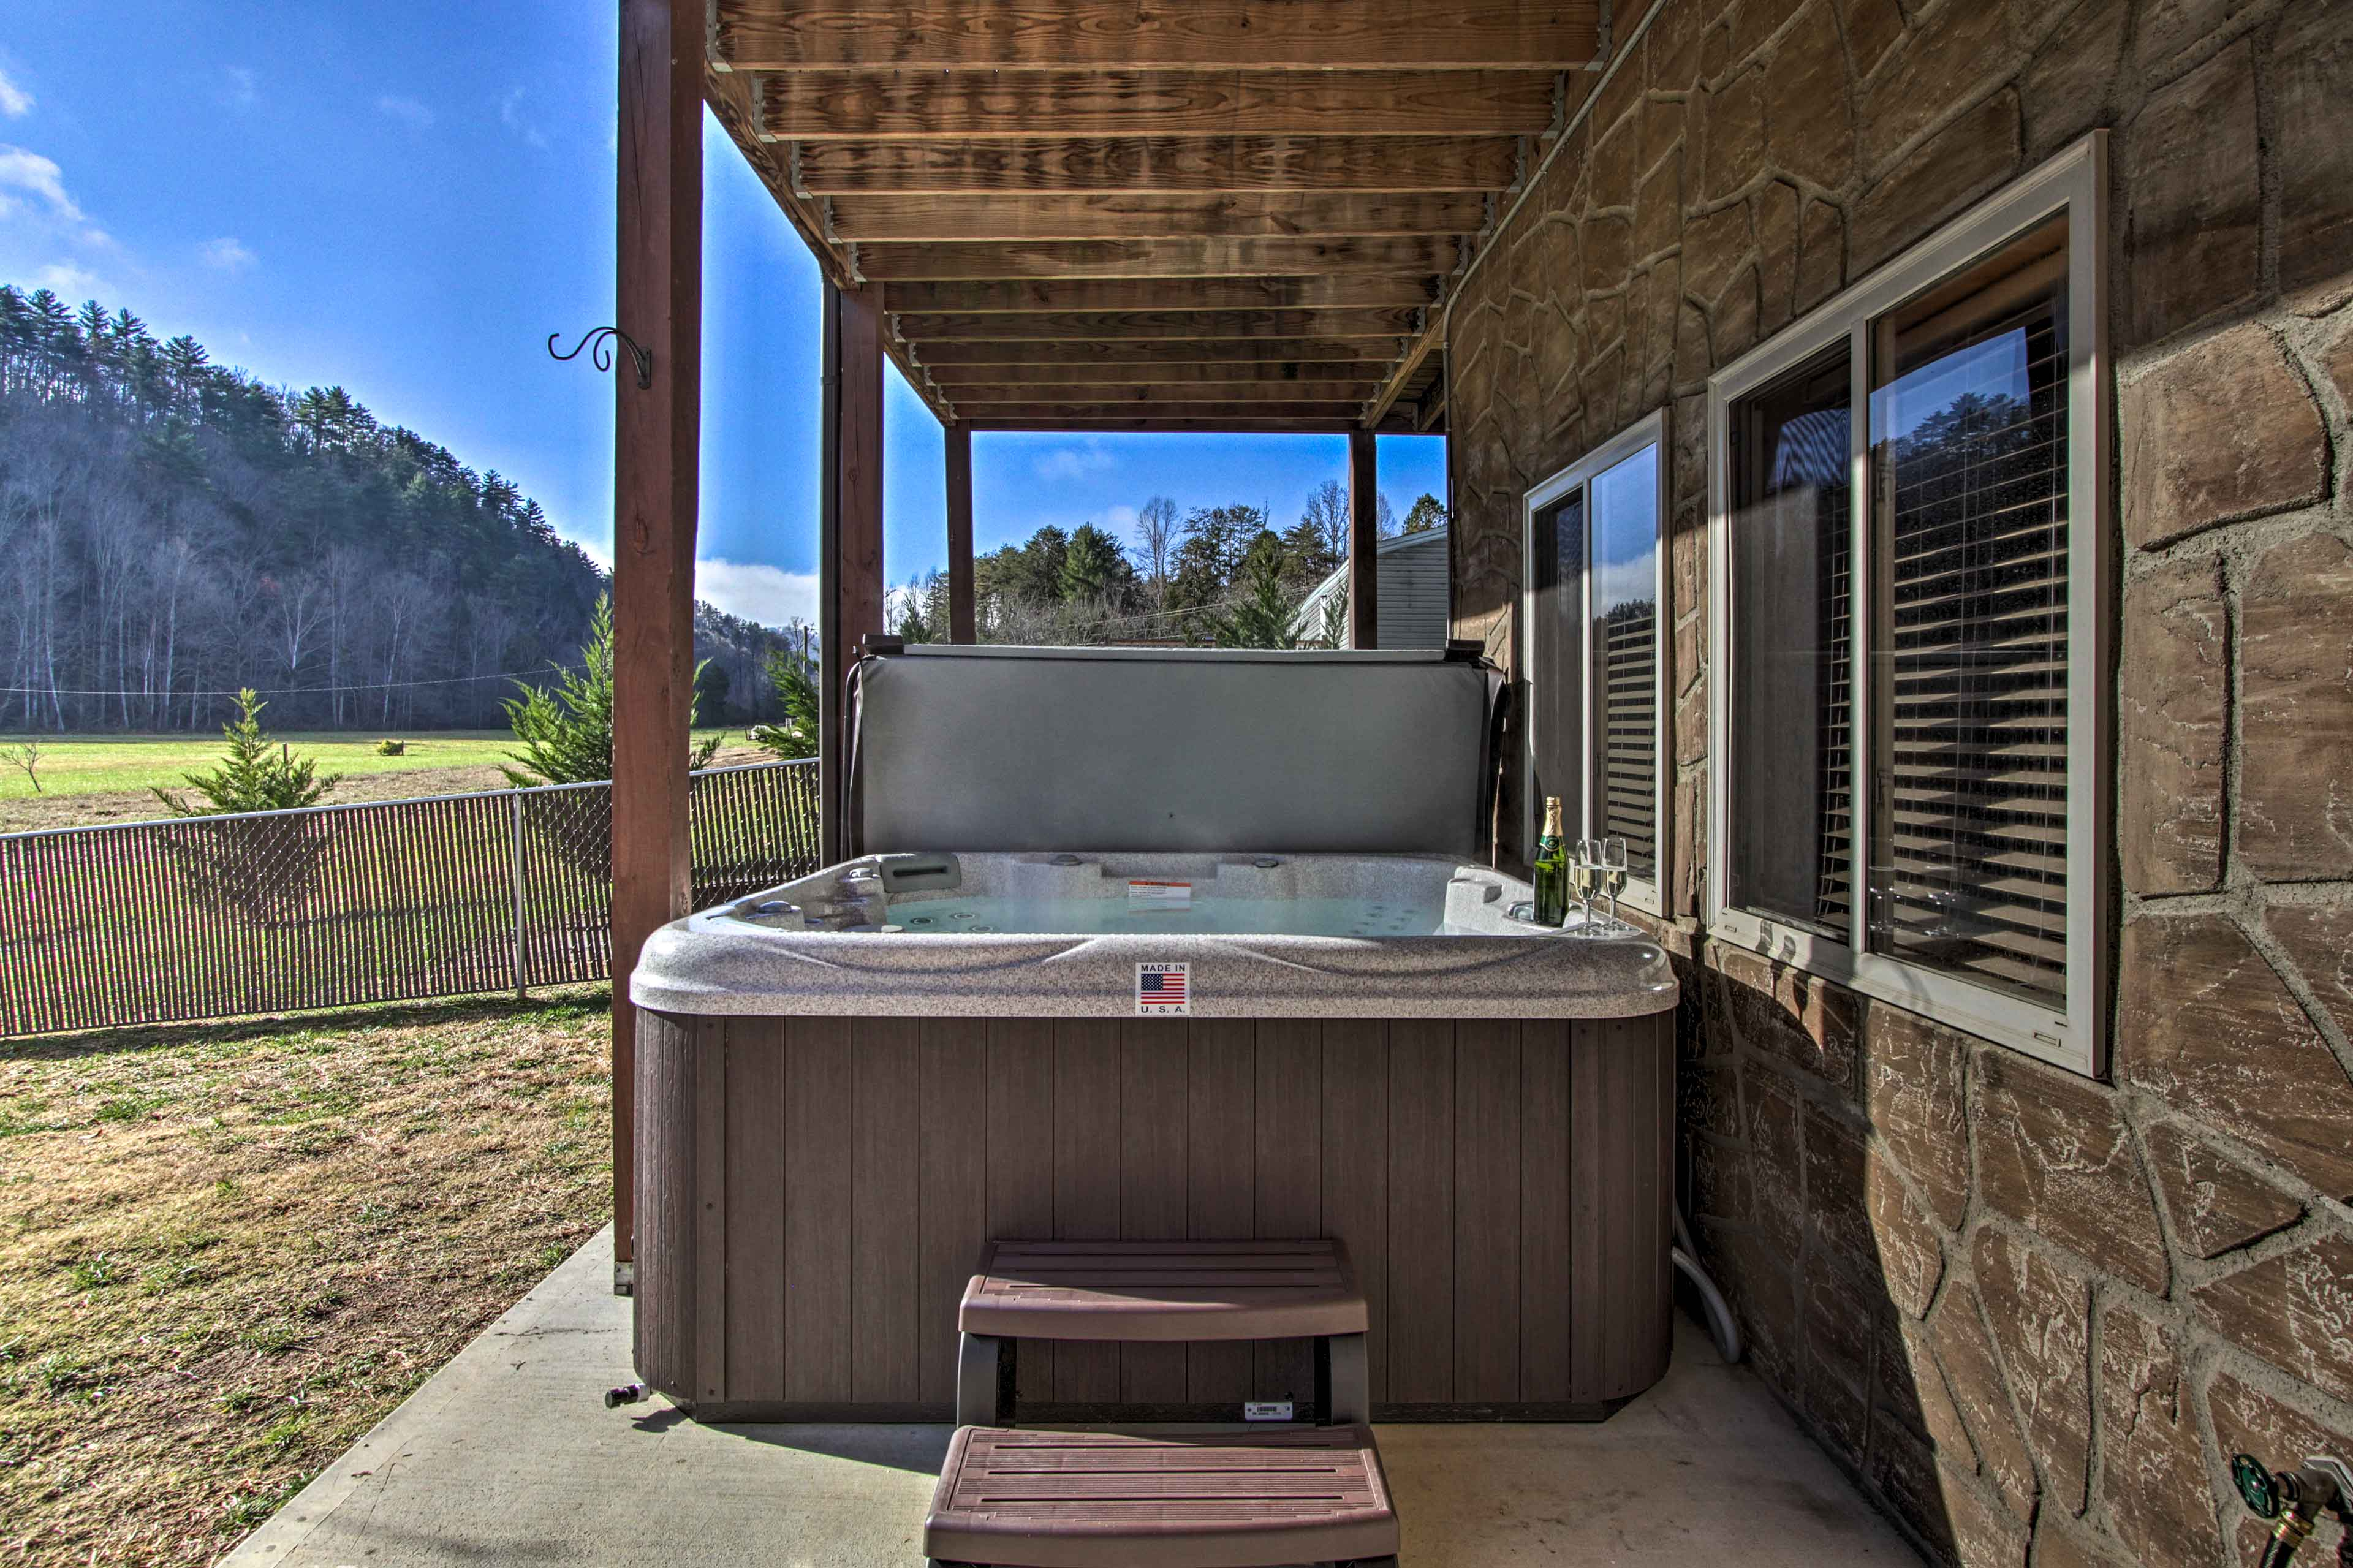 There's no better way to end the day than with a dip in this brand new hot tub.